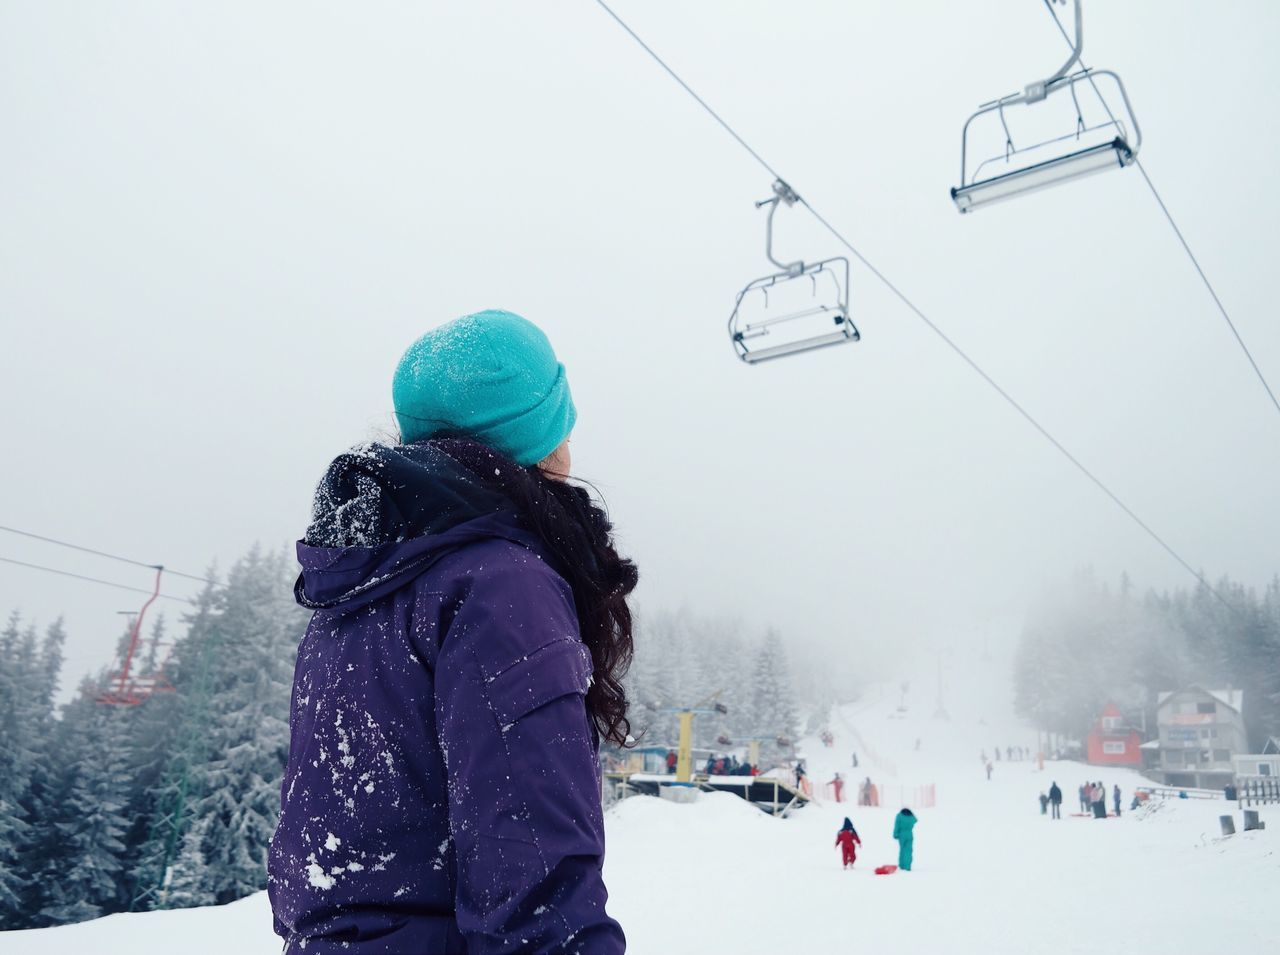 Cold look... Winter Snow Warm Clothing Cold Temperature Weather Leisure Activity Lifestyles Ski Lift Sky Snowing Overhead Cable Car Snowboarding Foggy Fog Made In Romania VSCO Travel Travel Destinations Fresh On Eyeem  My Favorite Photo Details Of My Life Moments Of Life Woman Mountain Women Around The World